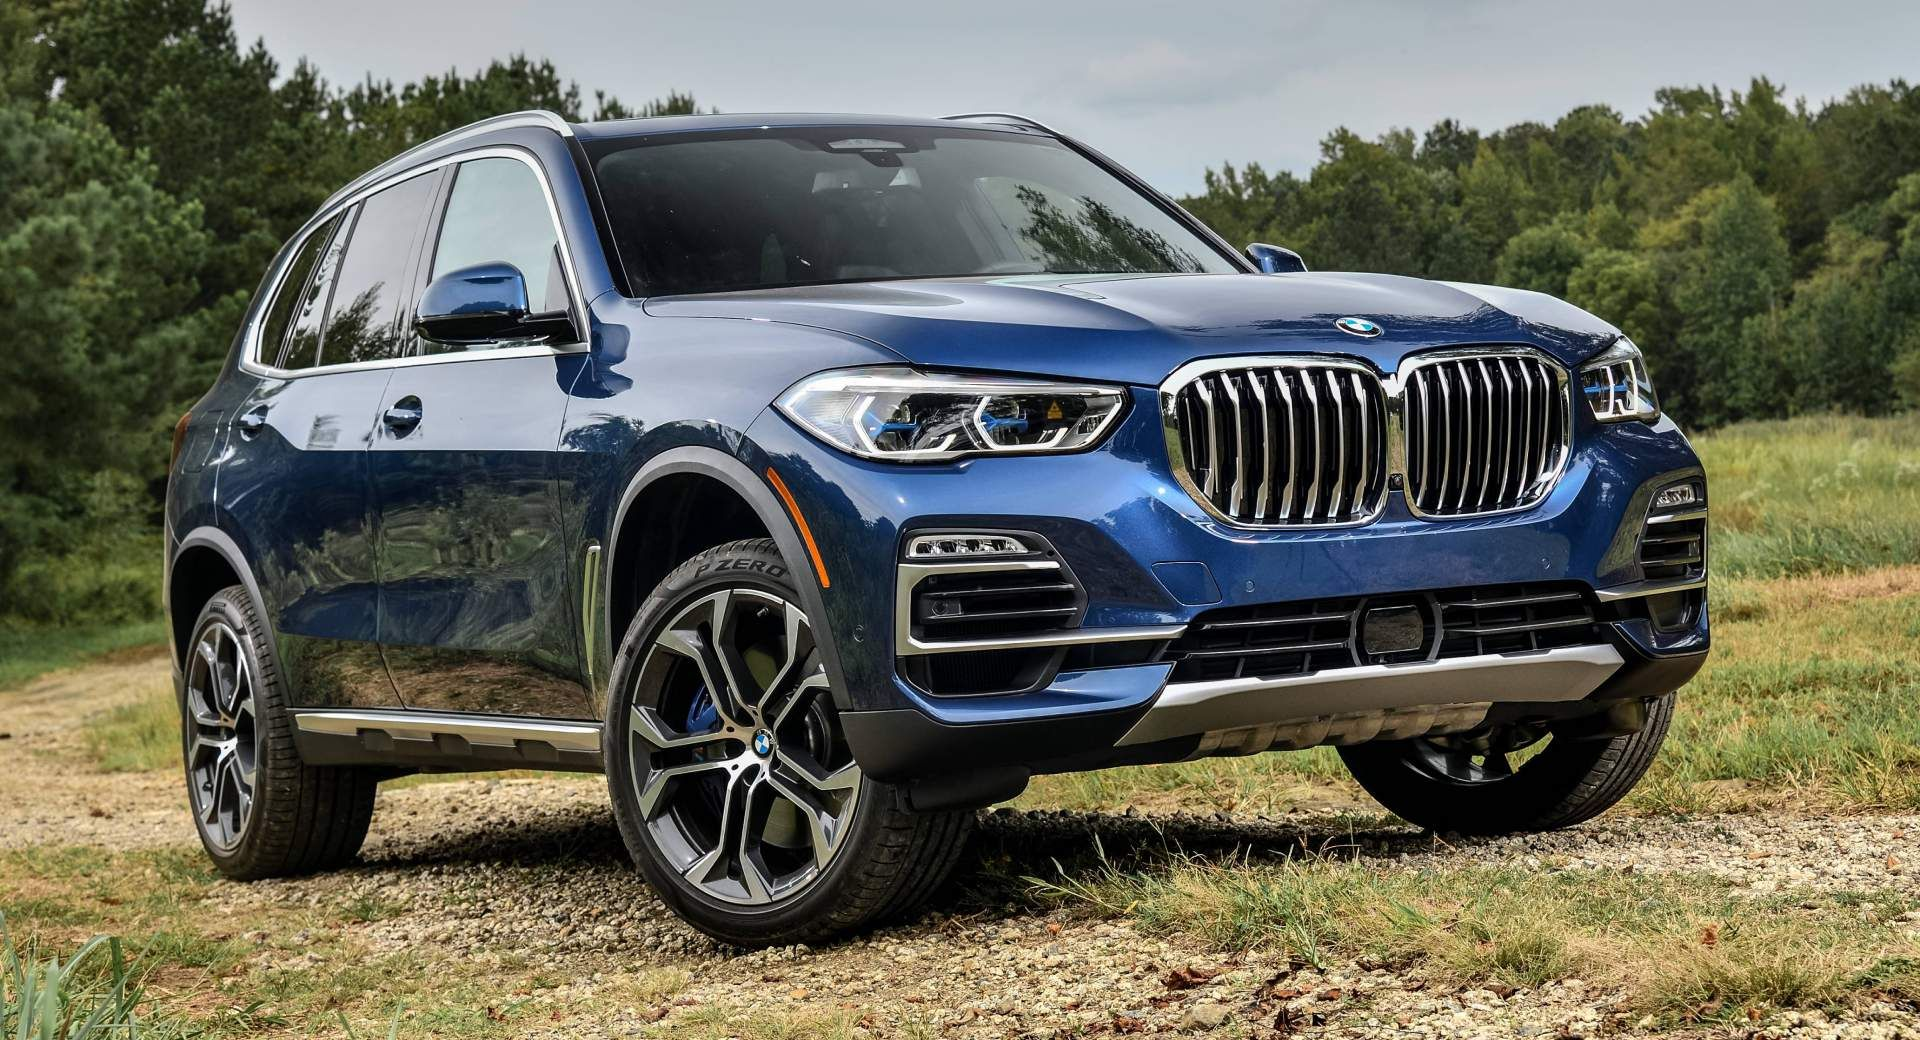 Your 2019 Bmw X5 Photo Gallery Is Here And It S Huge Carscoops Bmw X5 Bmw Bmw X5 Review